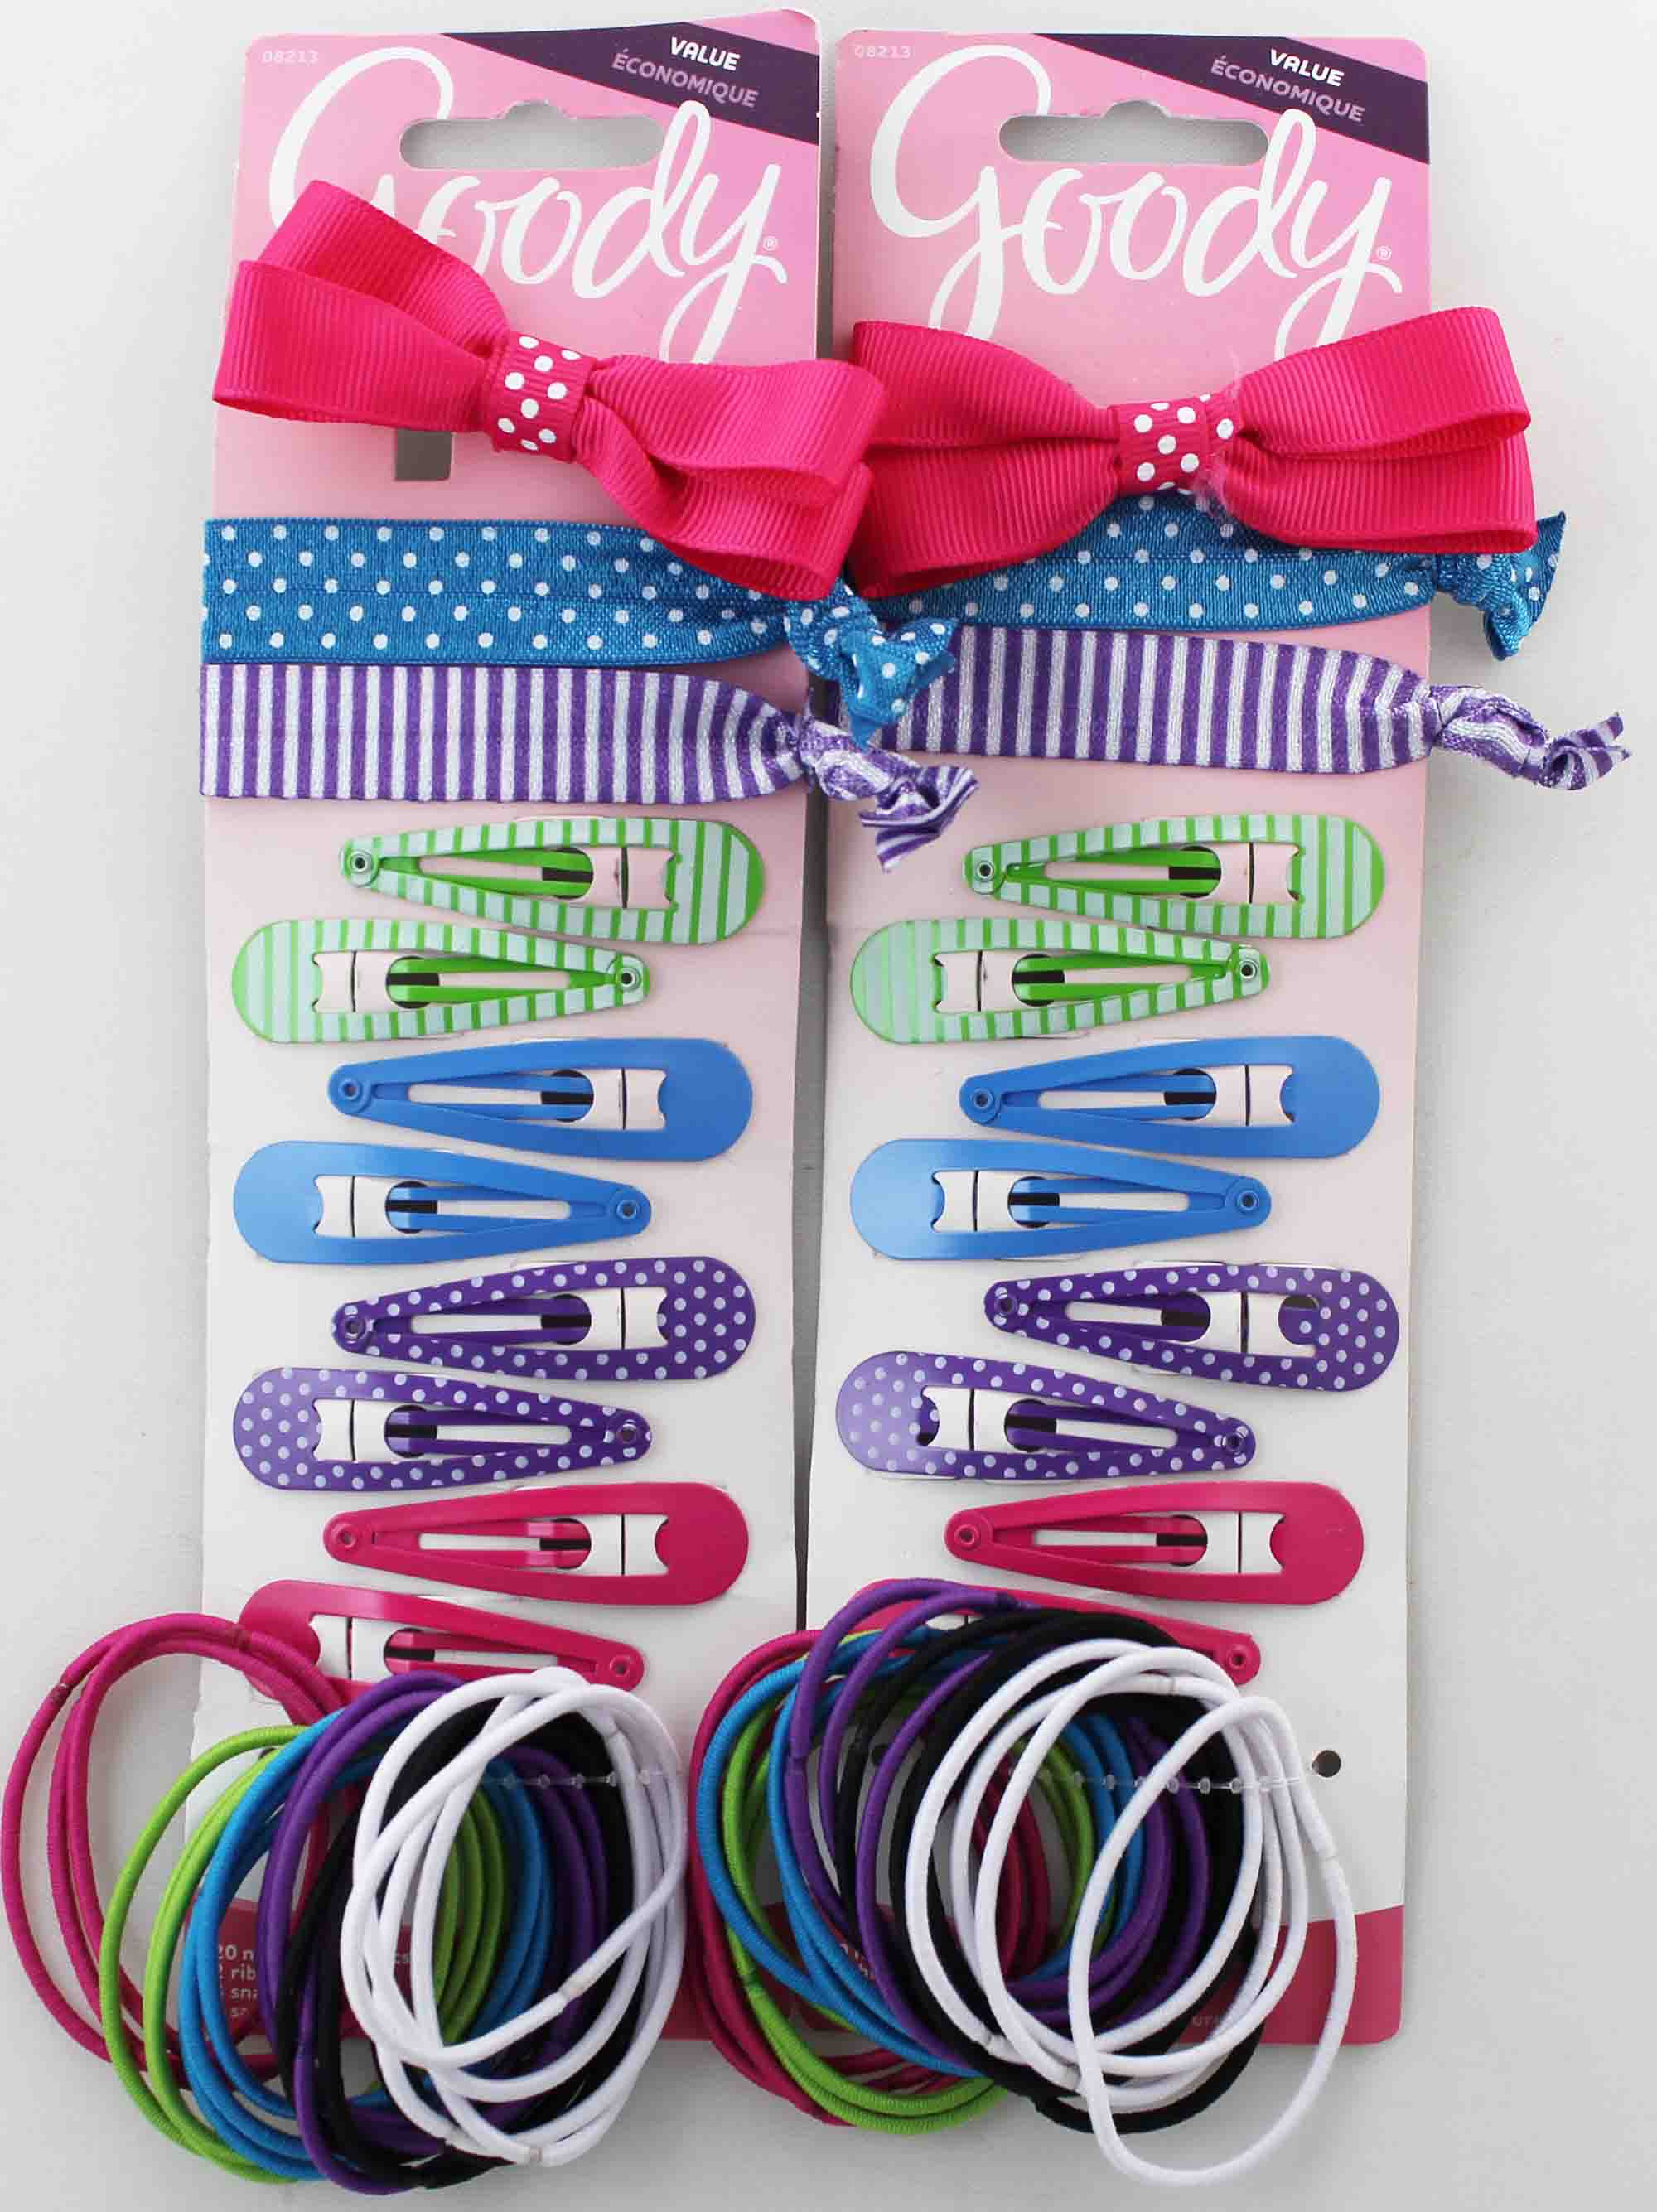 Goody No-Metal Elastics + Ribbon Elastics + Snap Clips + Salon Clip